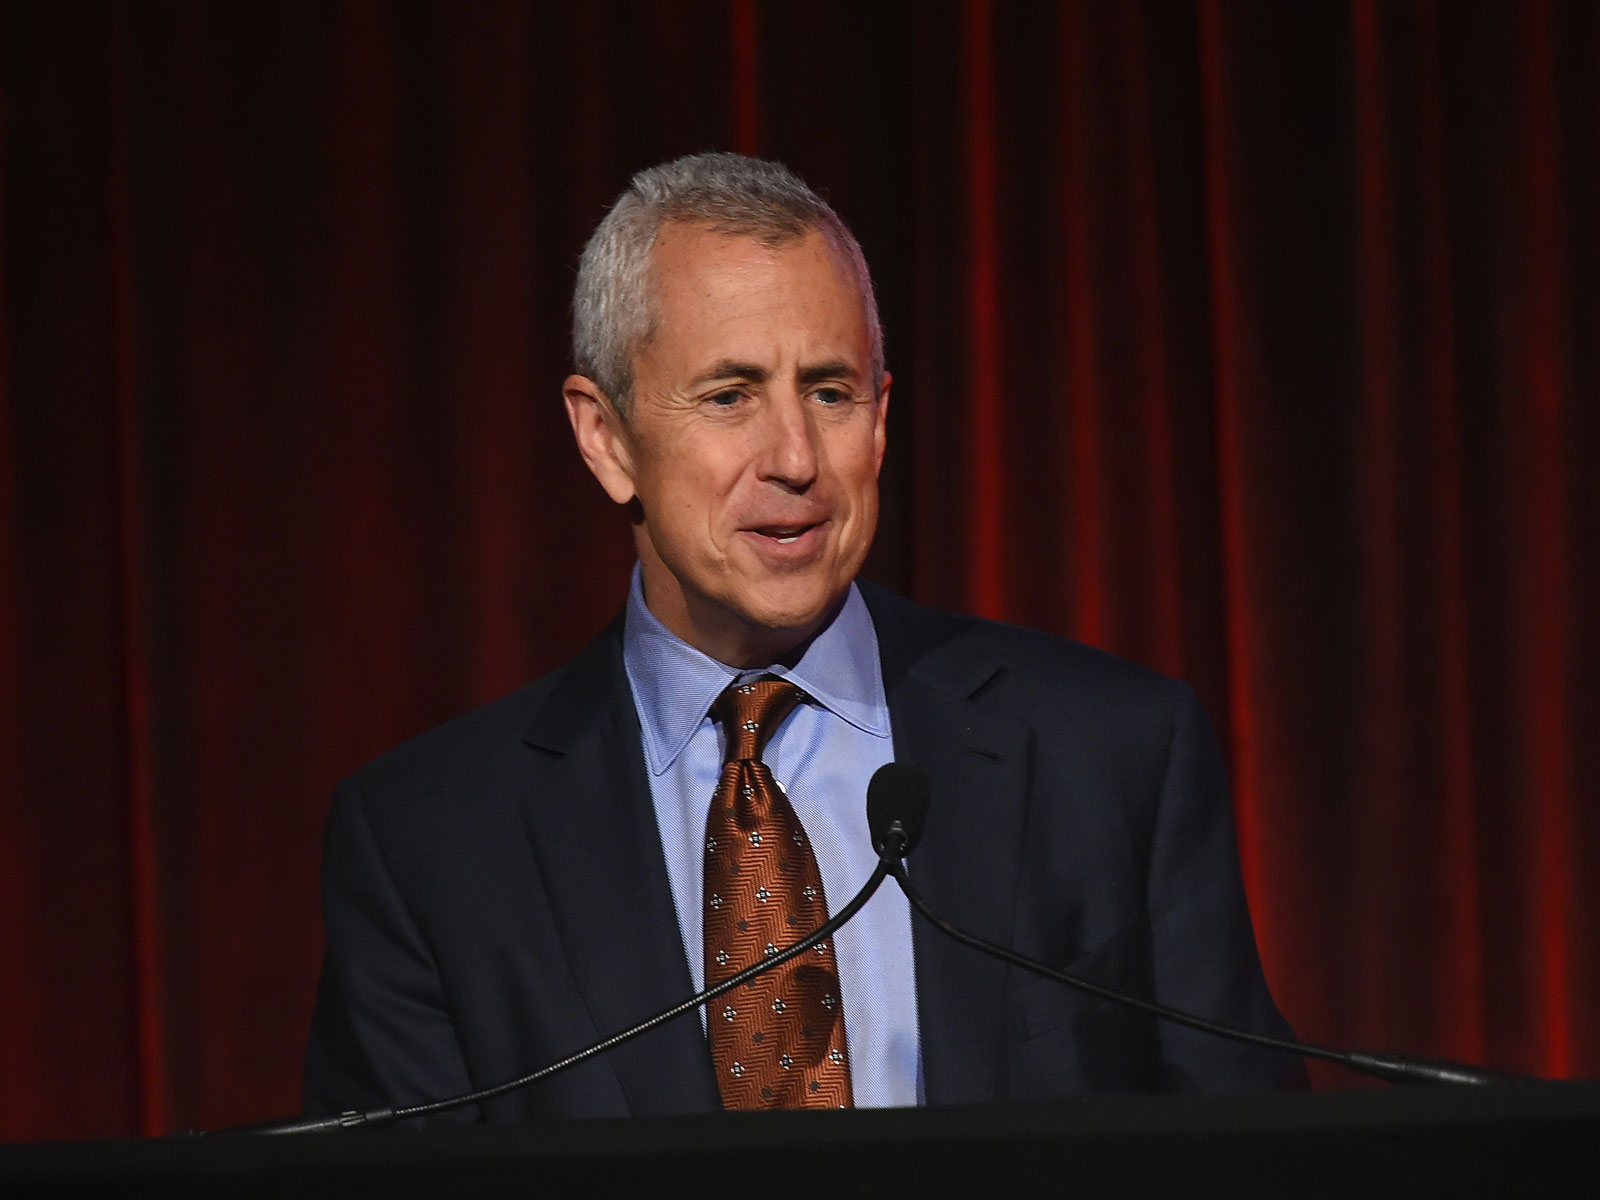 Danny Meyer to Bring Original Restaurant Concept to D.C. in 2020